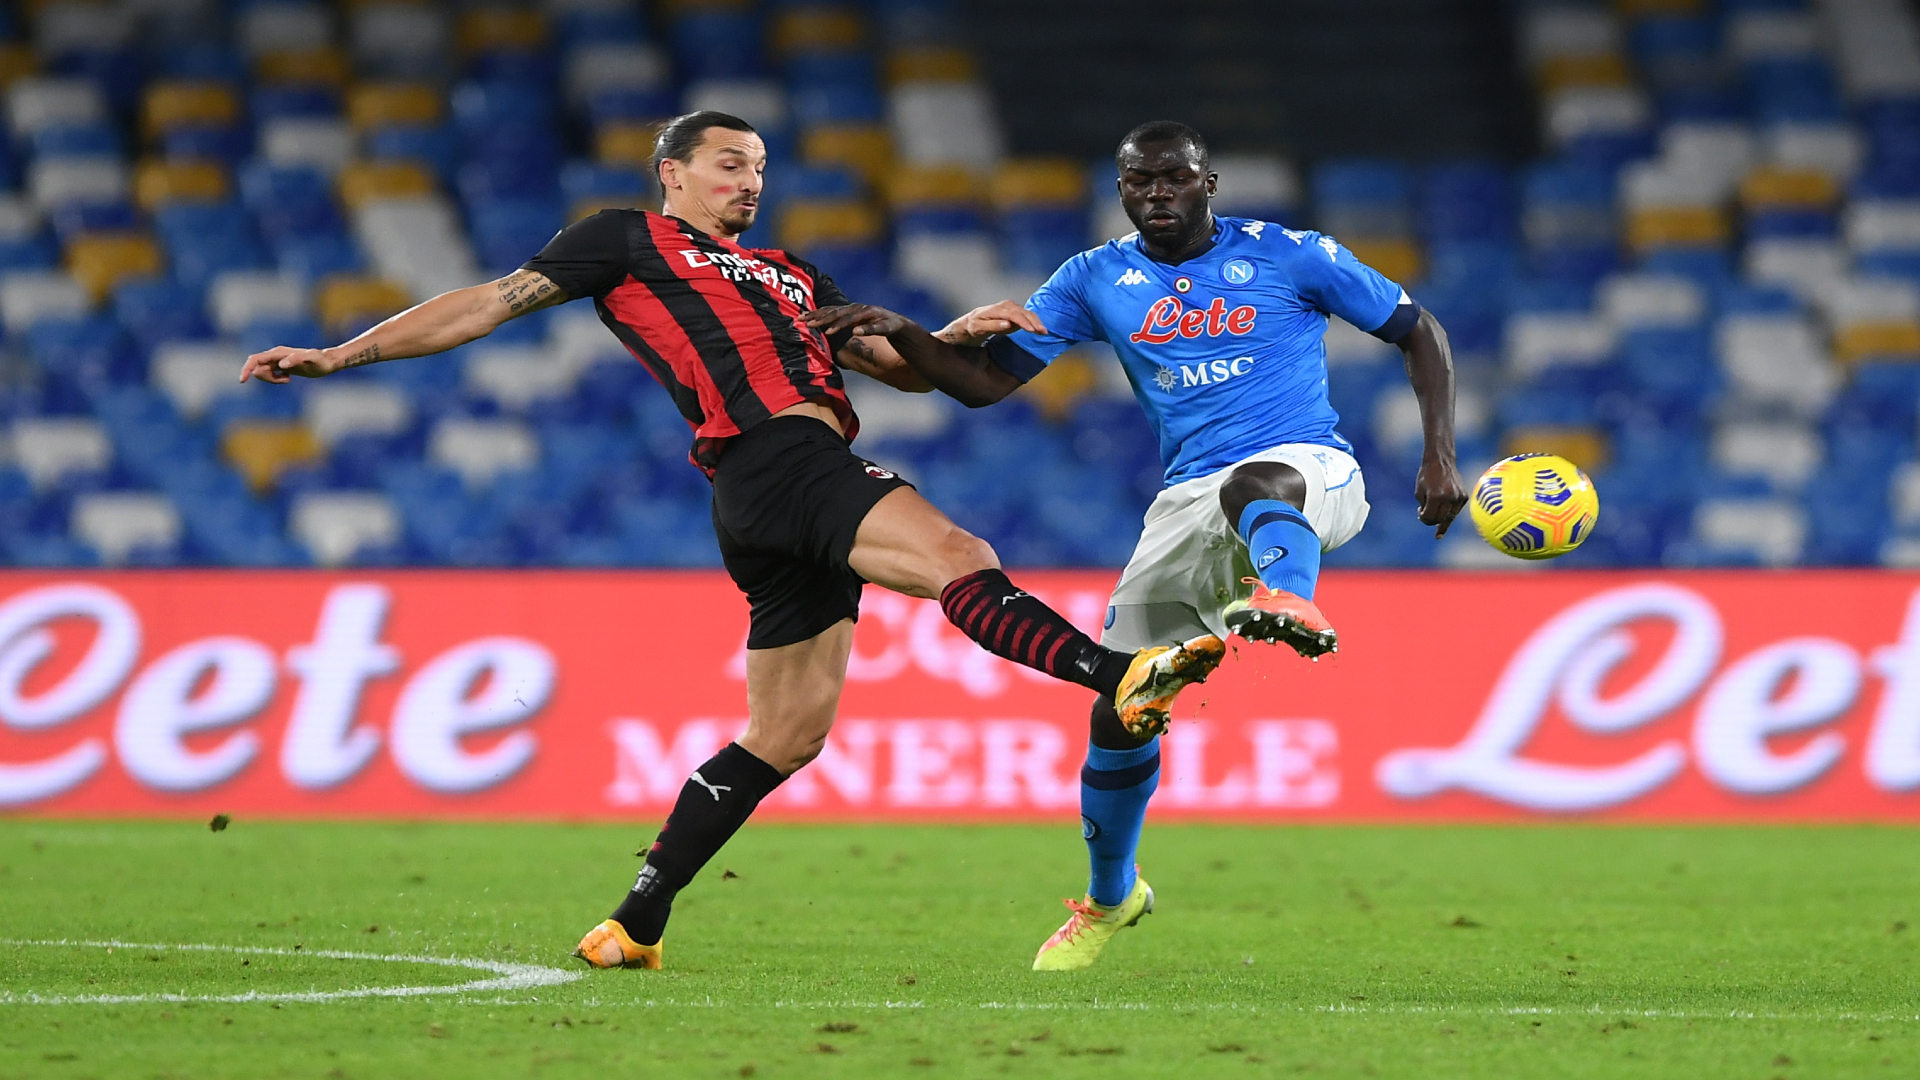 Koulibaly vs Ibrahimovic: How did Napoli centre-back fare against colossal Swede?